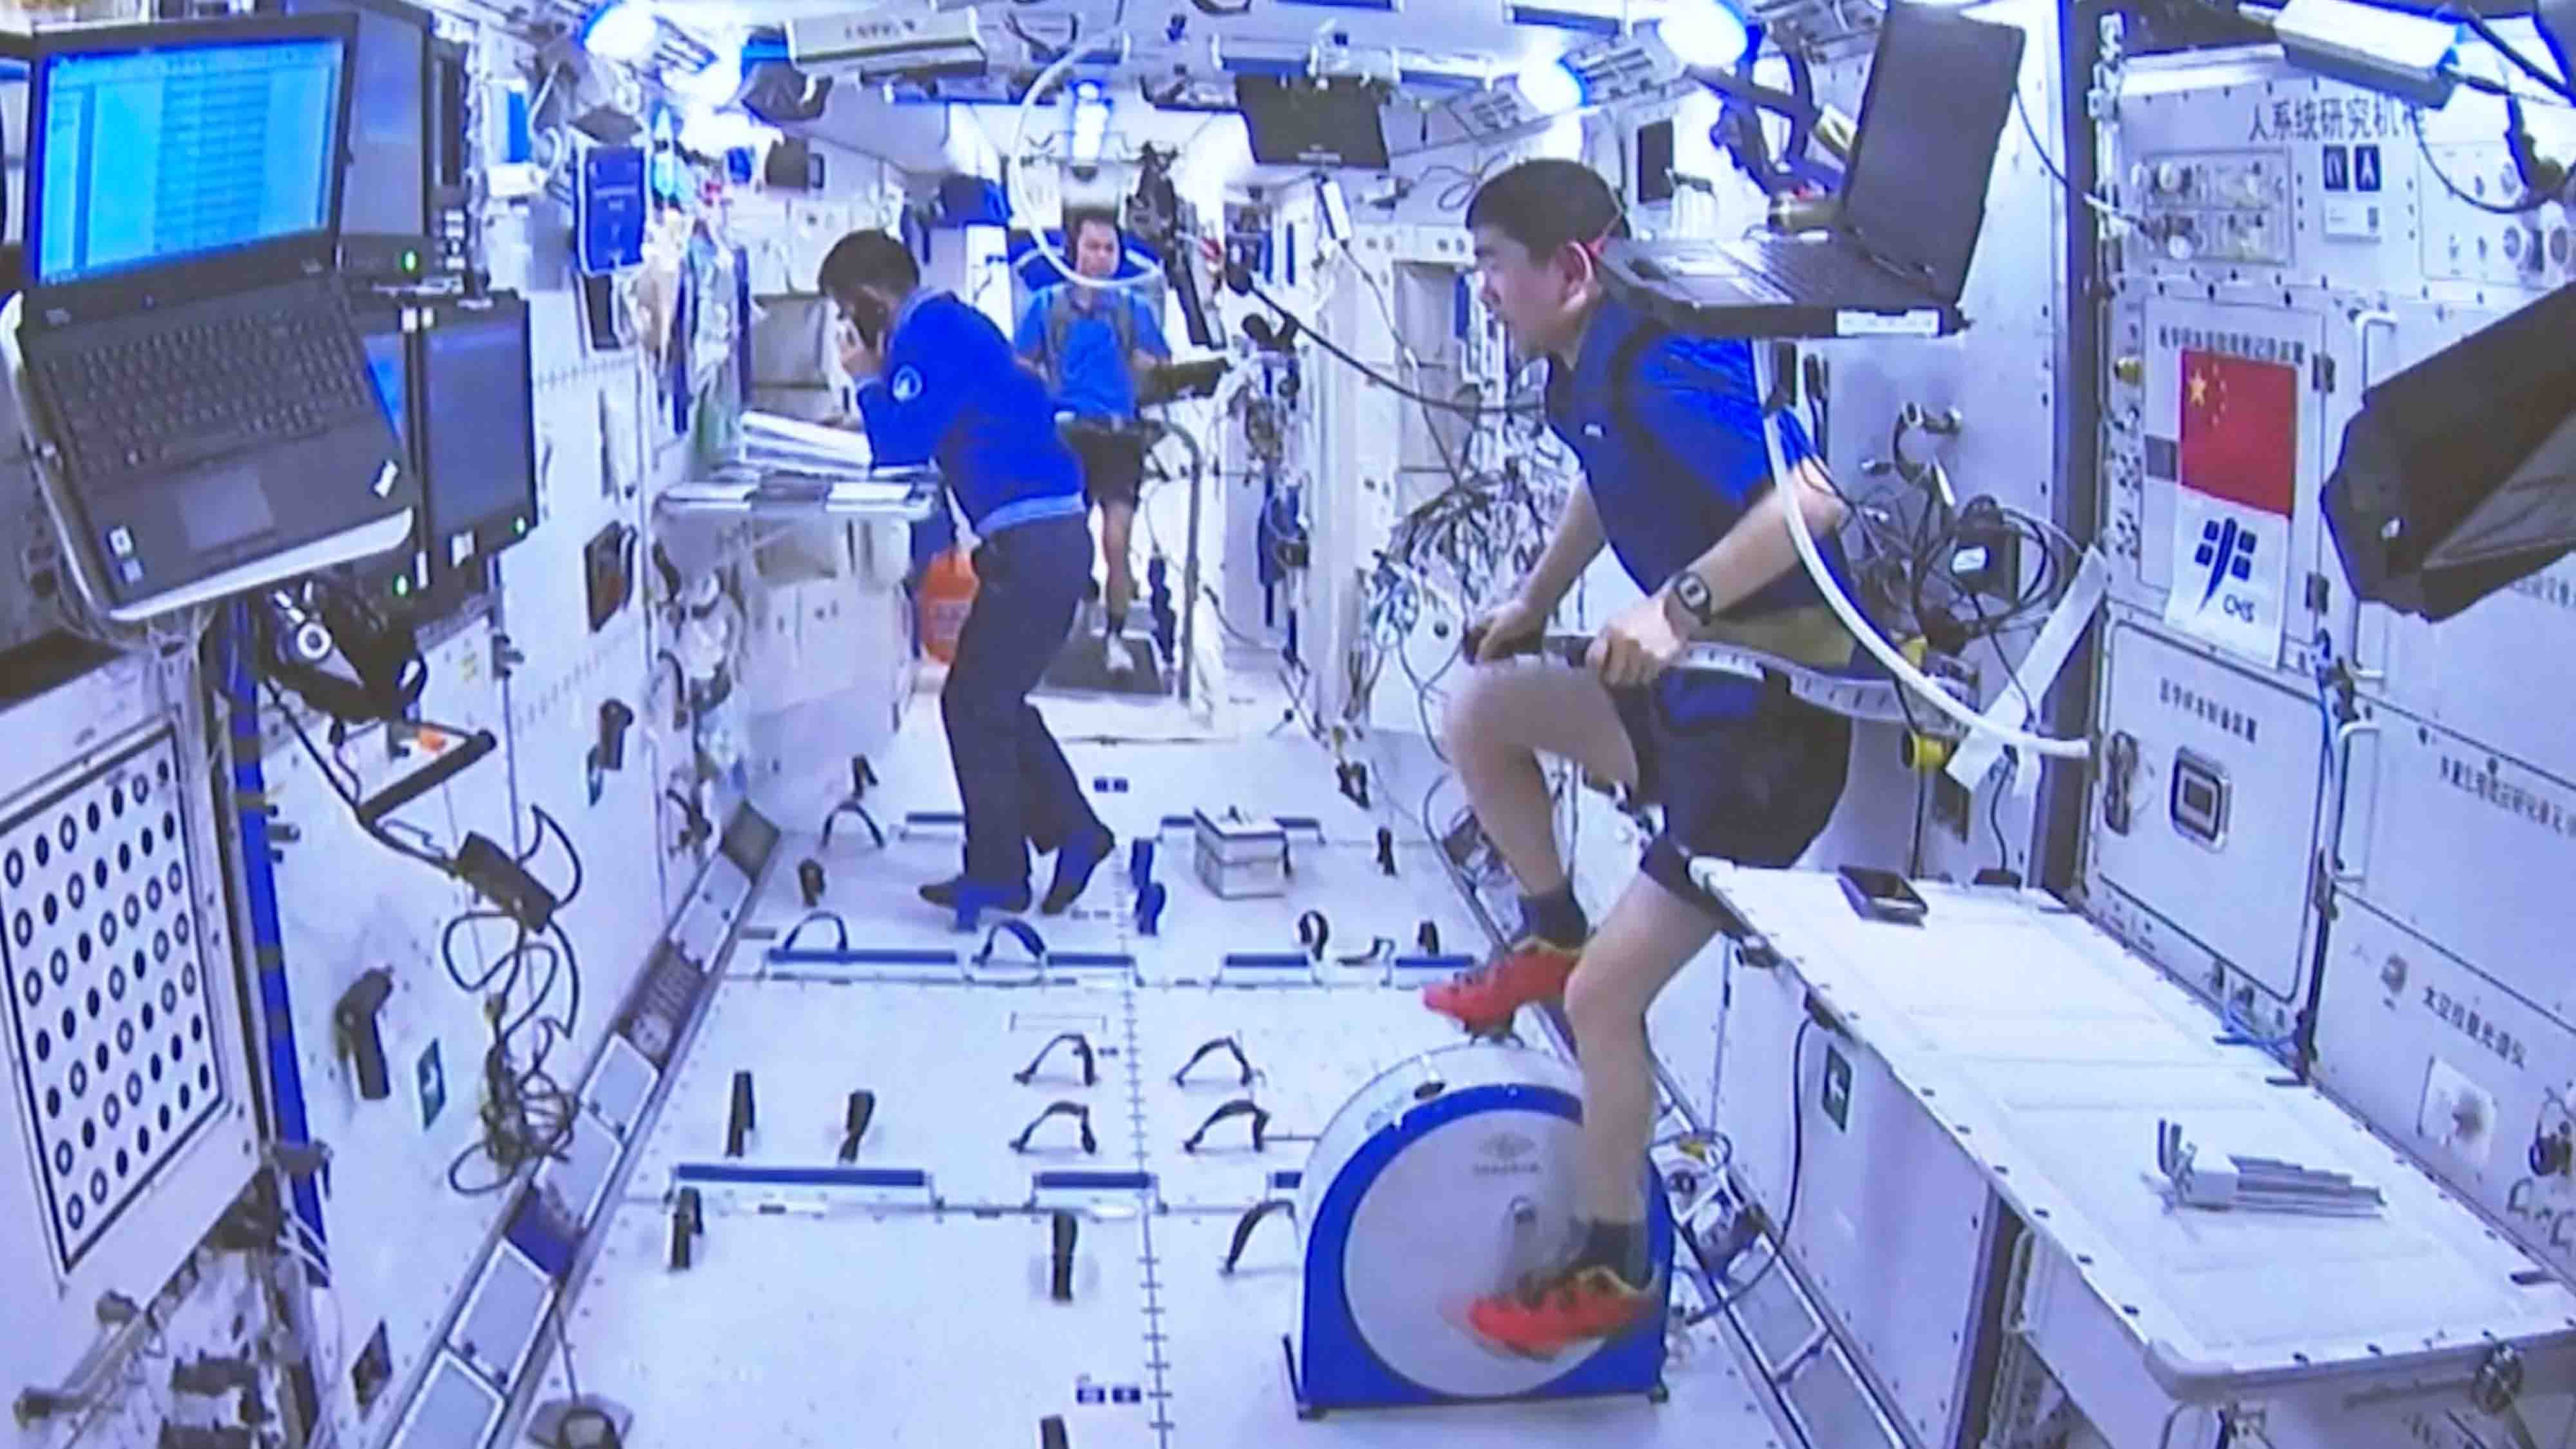 Working, dining, TV news, exercising: A day in China Space Station - CGTN